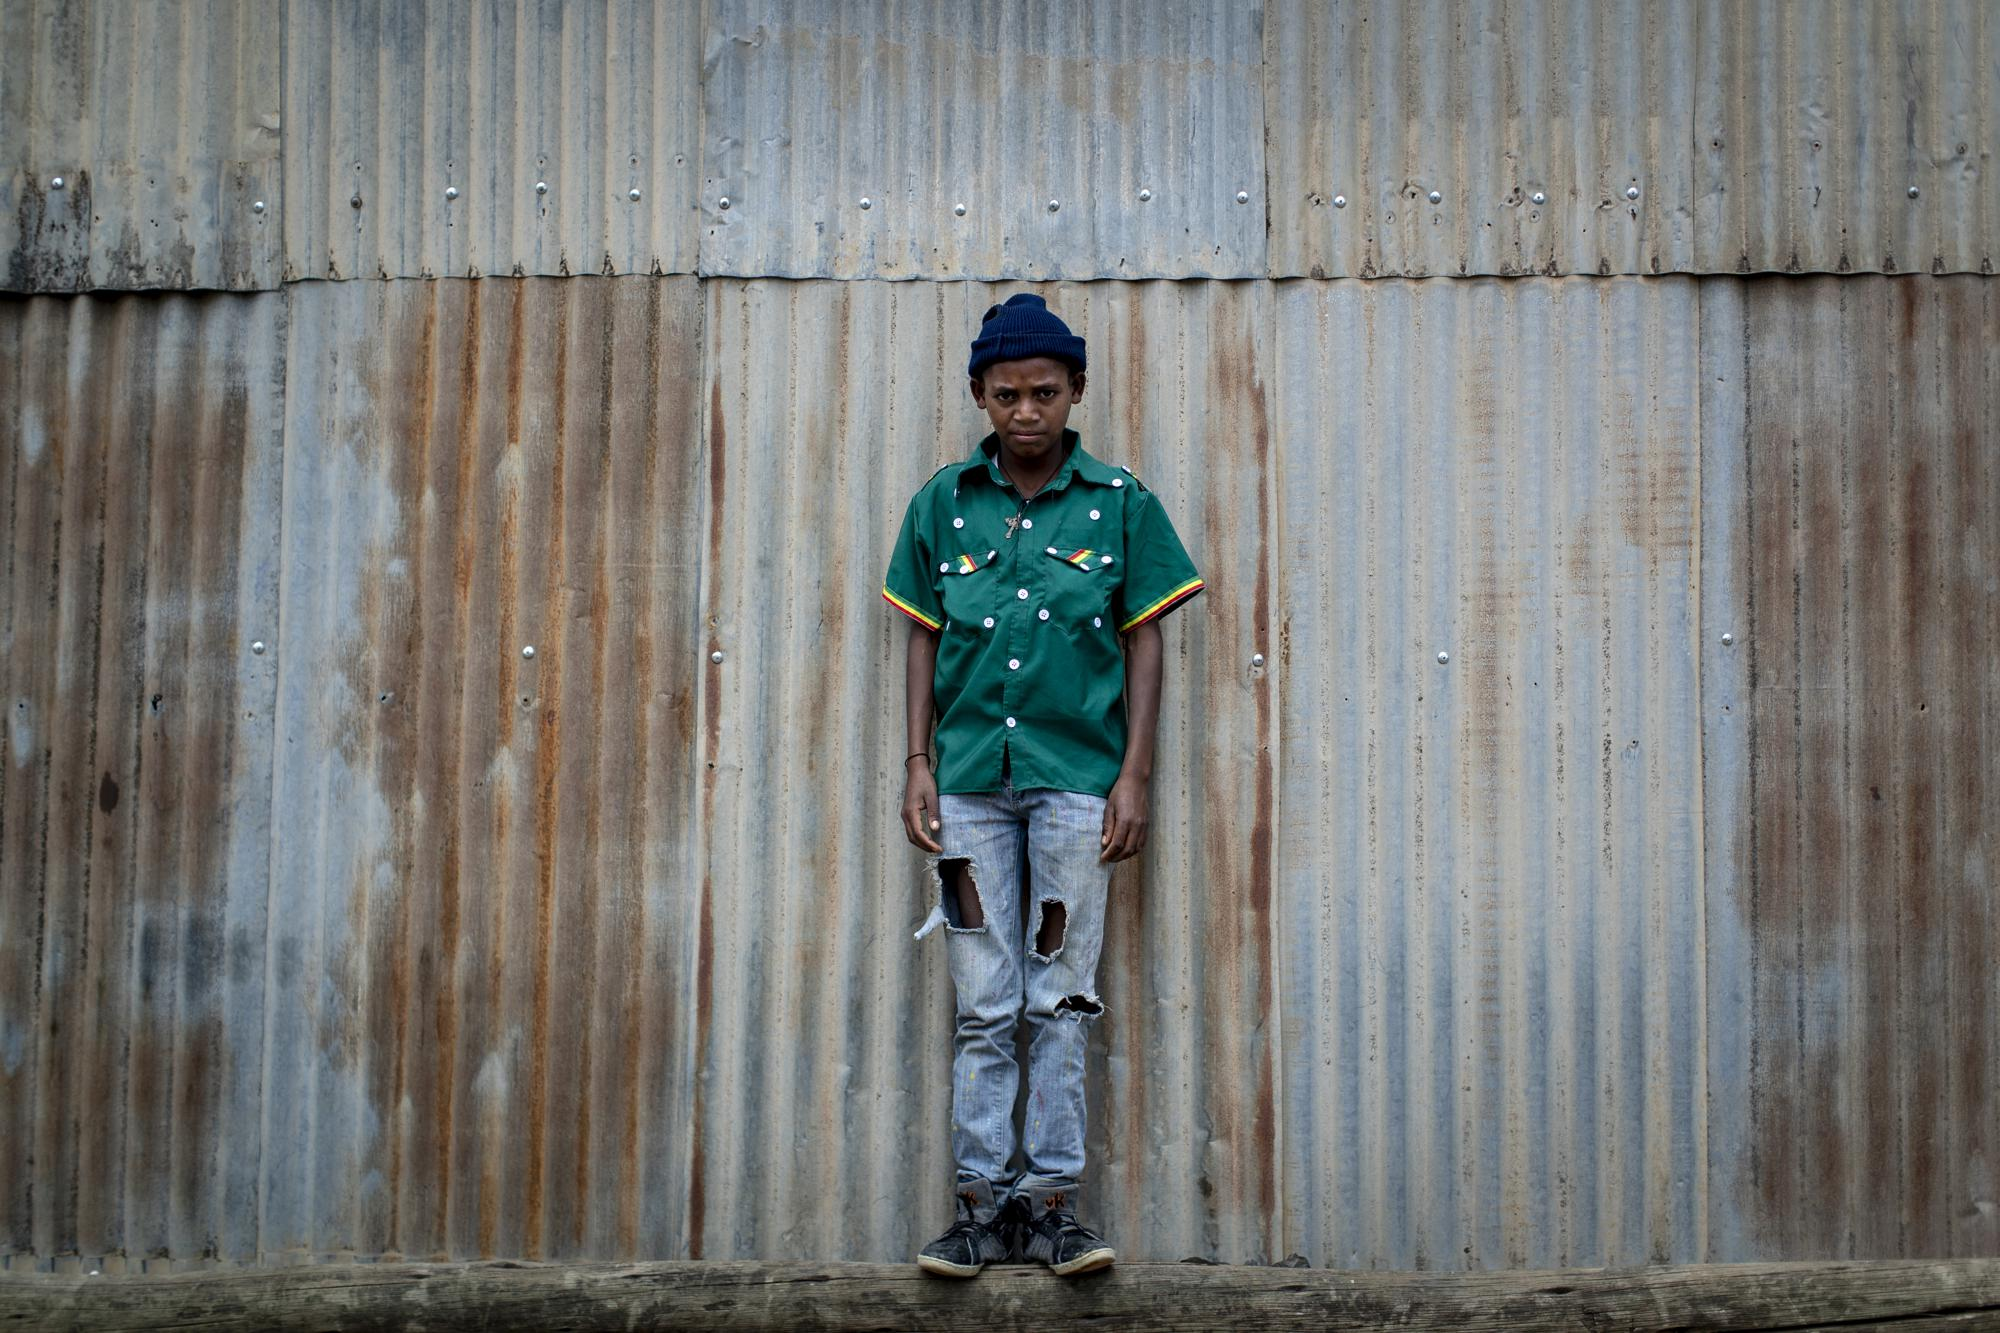 Gebremedhin Gebreslassie, 12, who fled from fighting in the town of Hawzen, stands next to a metal shack at a reception center for the internally displaced in Mekele, in the Tigray region of northern Ethiopia, on Sunday, May 9, 2021. Residents of Hawzen, a town of a few thousand people, said it had seen fighting four times since November. (AP Photo/Ben Curtis)